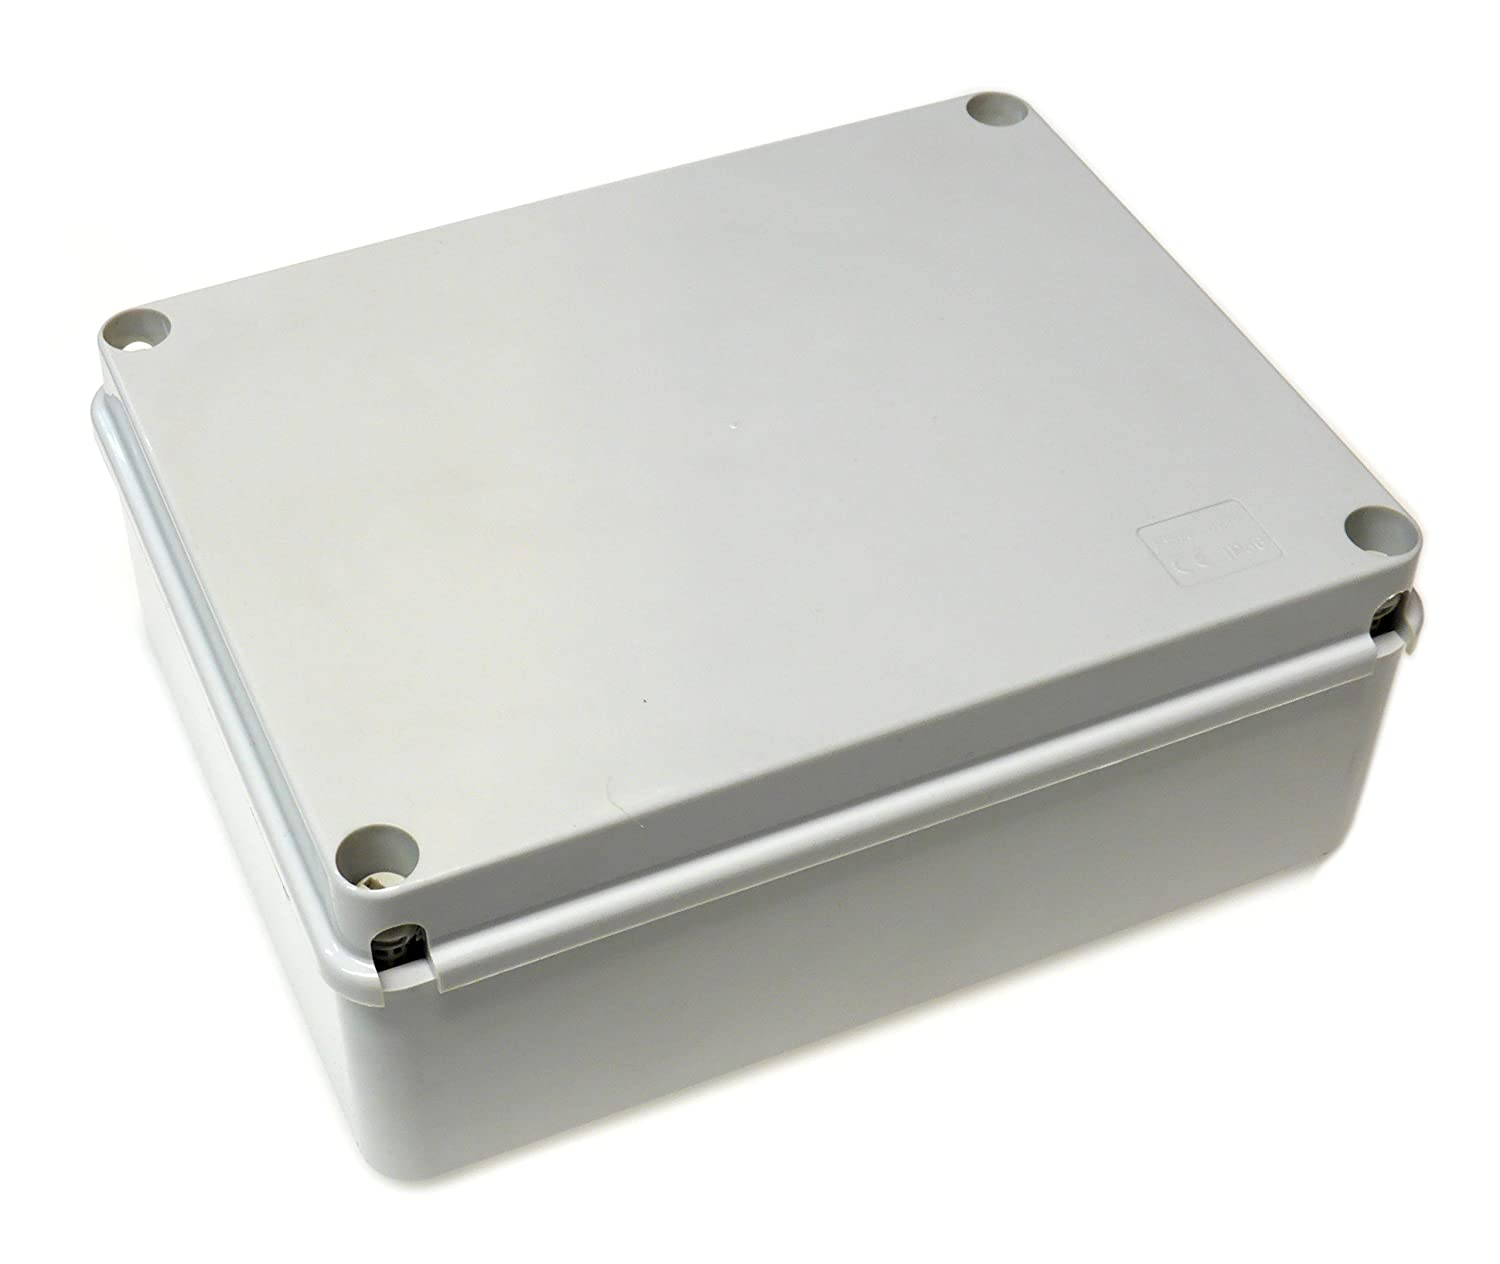 240x190x90 Waterproof Junction Box With Smooth Walls IP56 Adaptable Box JB245B Live Electrical